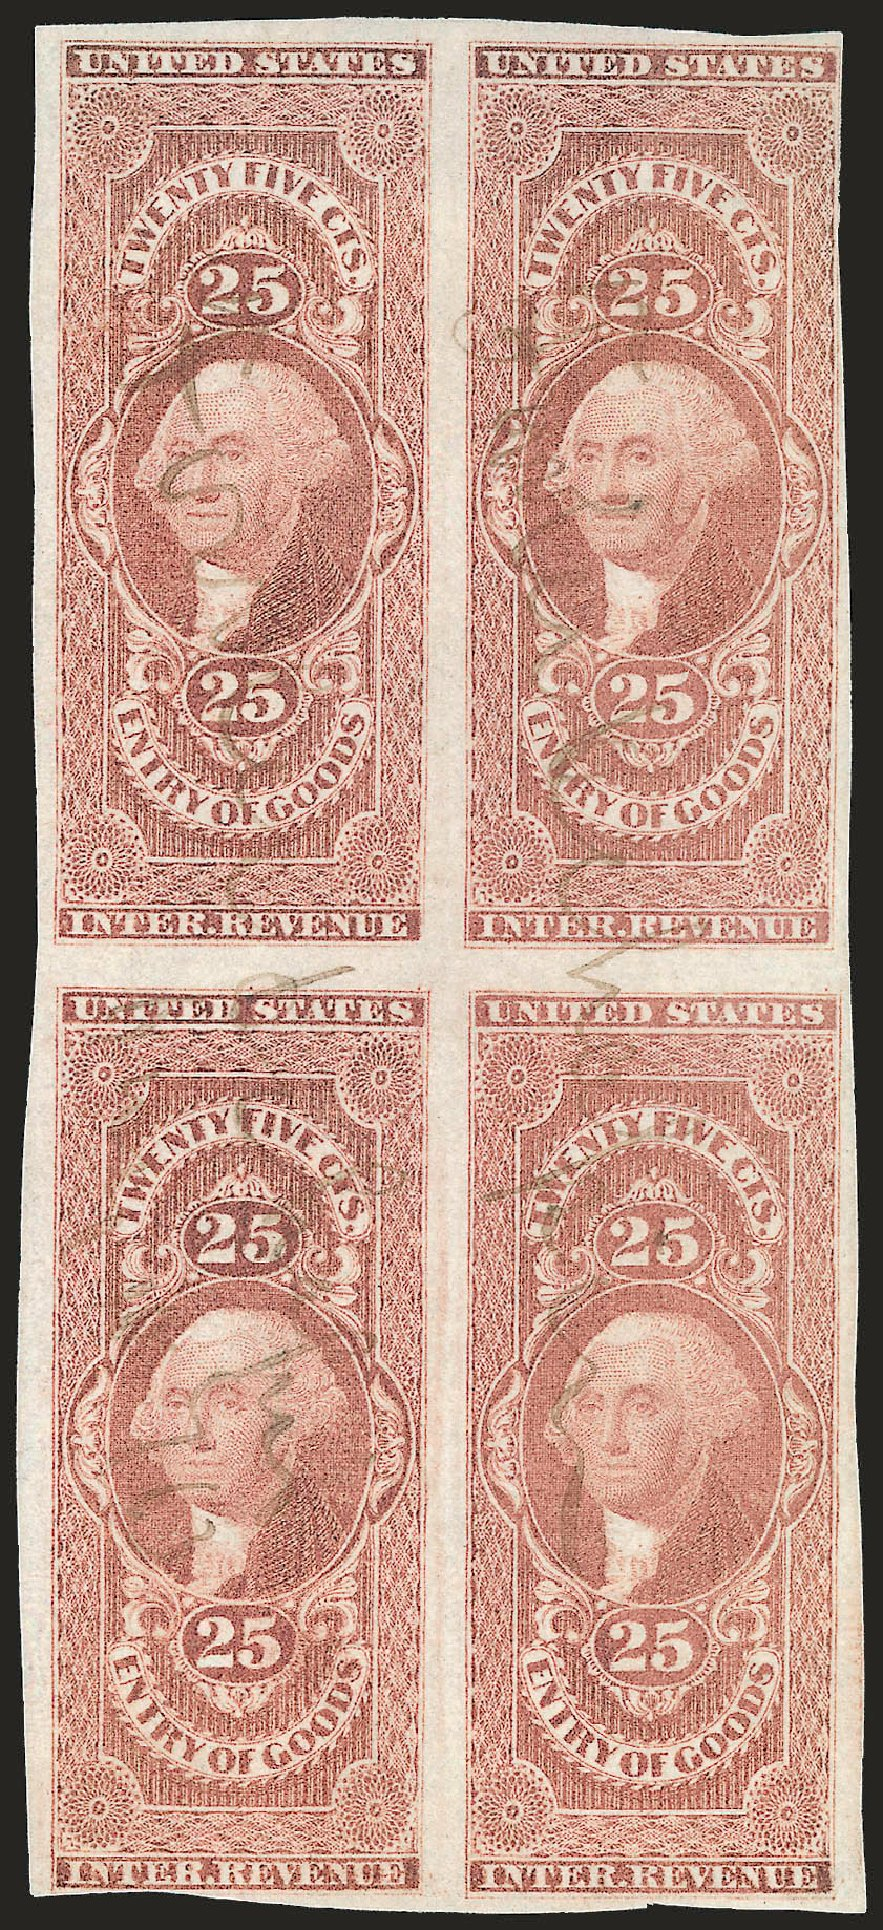 US Stamps Price Scott Catalogue # R45: 25c 1862 Revenue Entry of Goods. Robert Siegel Auction Galleries, Jun 2009, Sale 975, Lot 2292